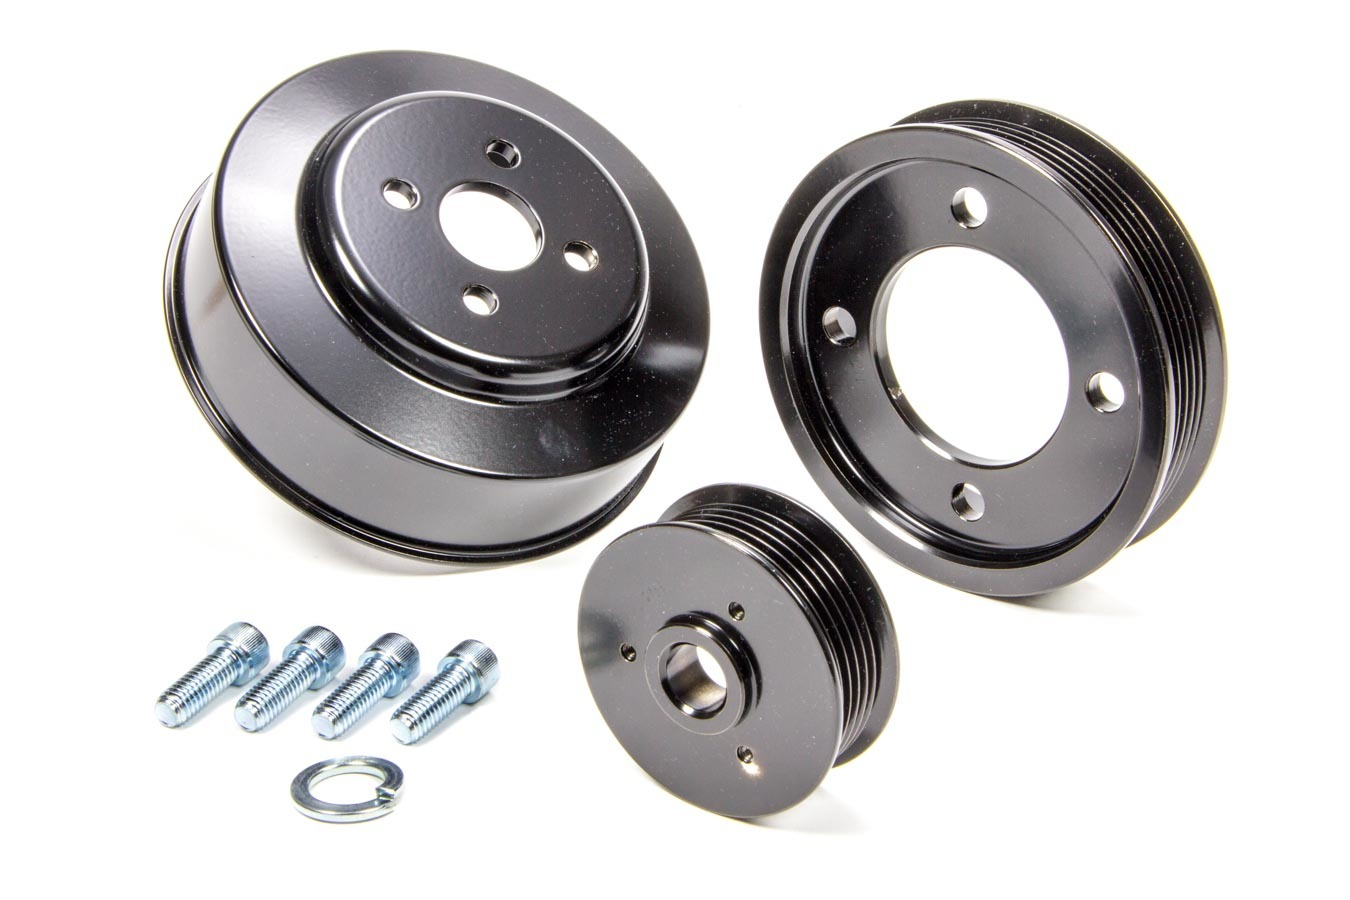 March Performance 1100-08 Pulley Kit, Performance, 6 Rib Serpentine, Aluminum / Steel, Black Powder coat, Small Block Ford, Ford Mustang 1994-95, Kit